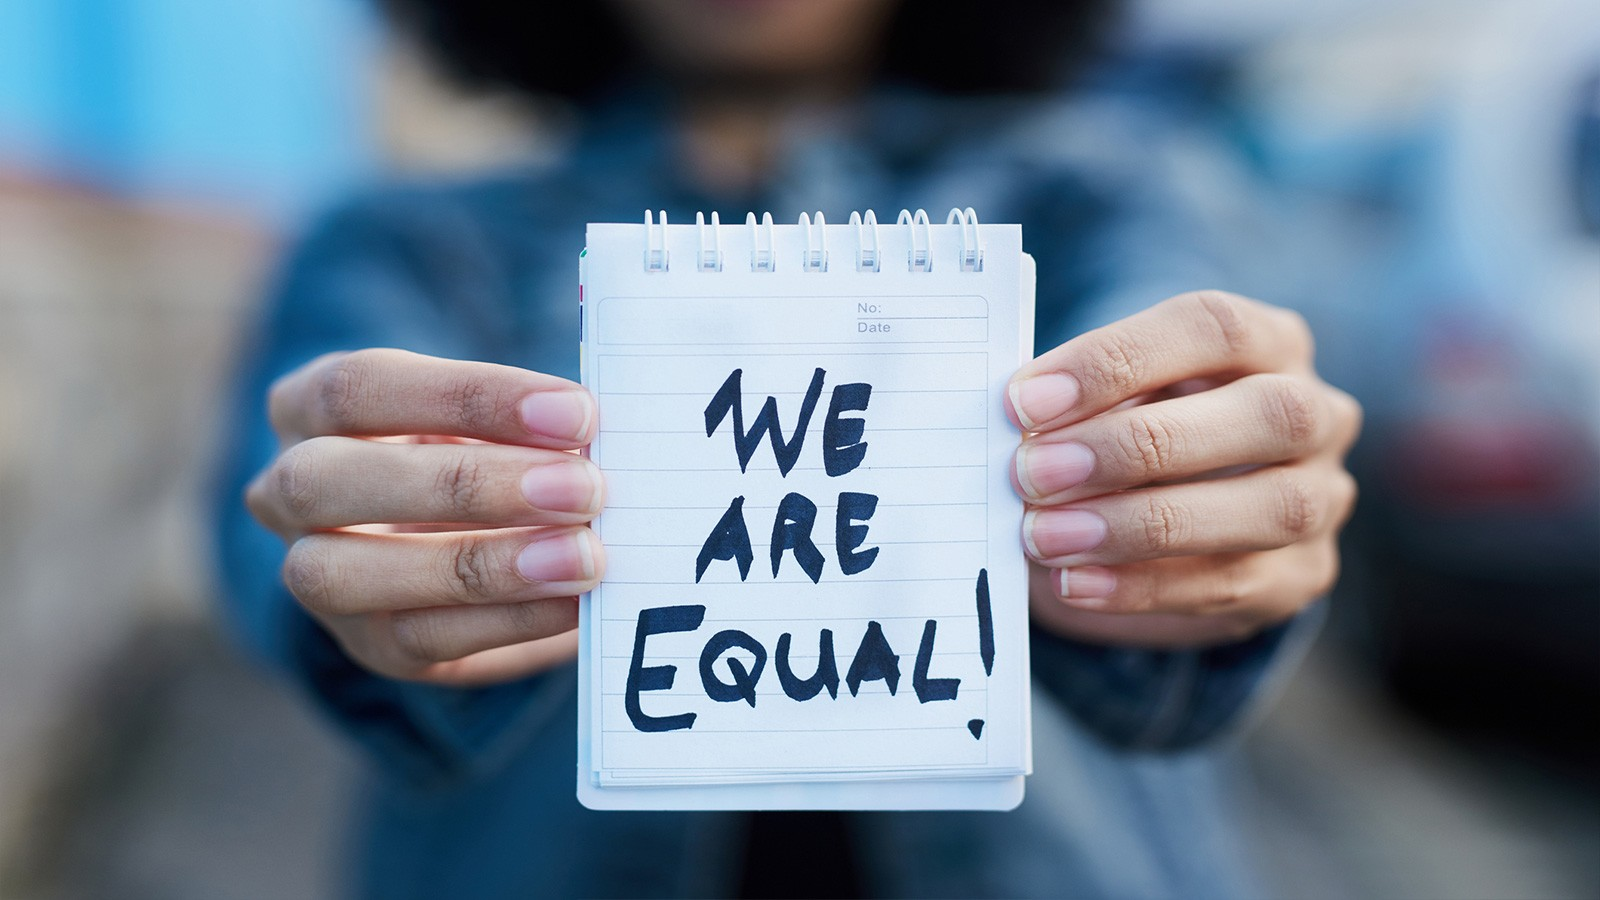 woman holding we are equal sign